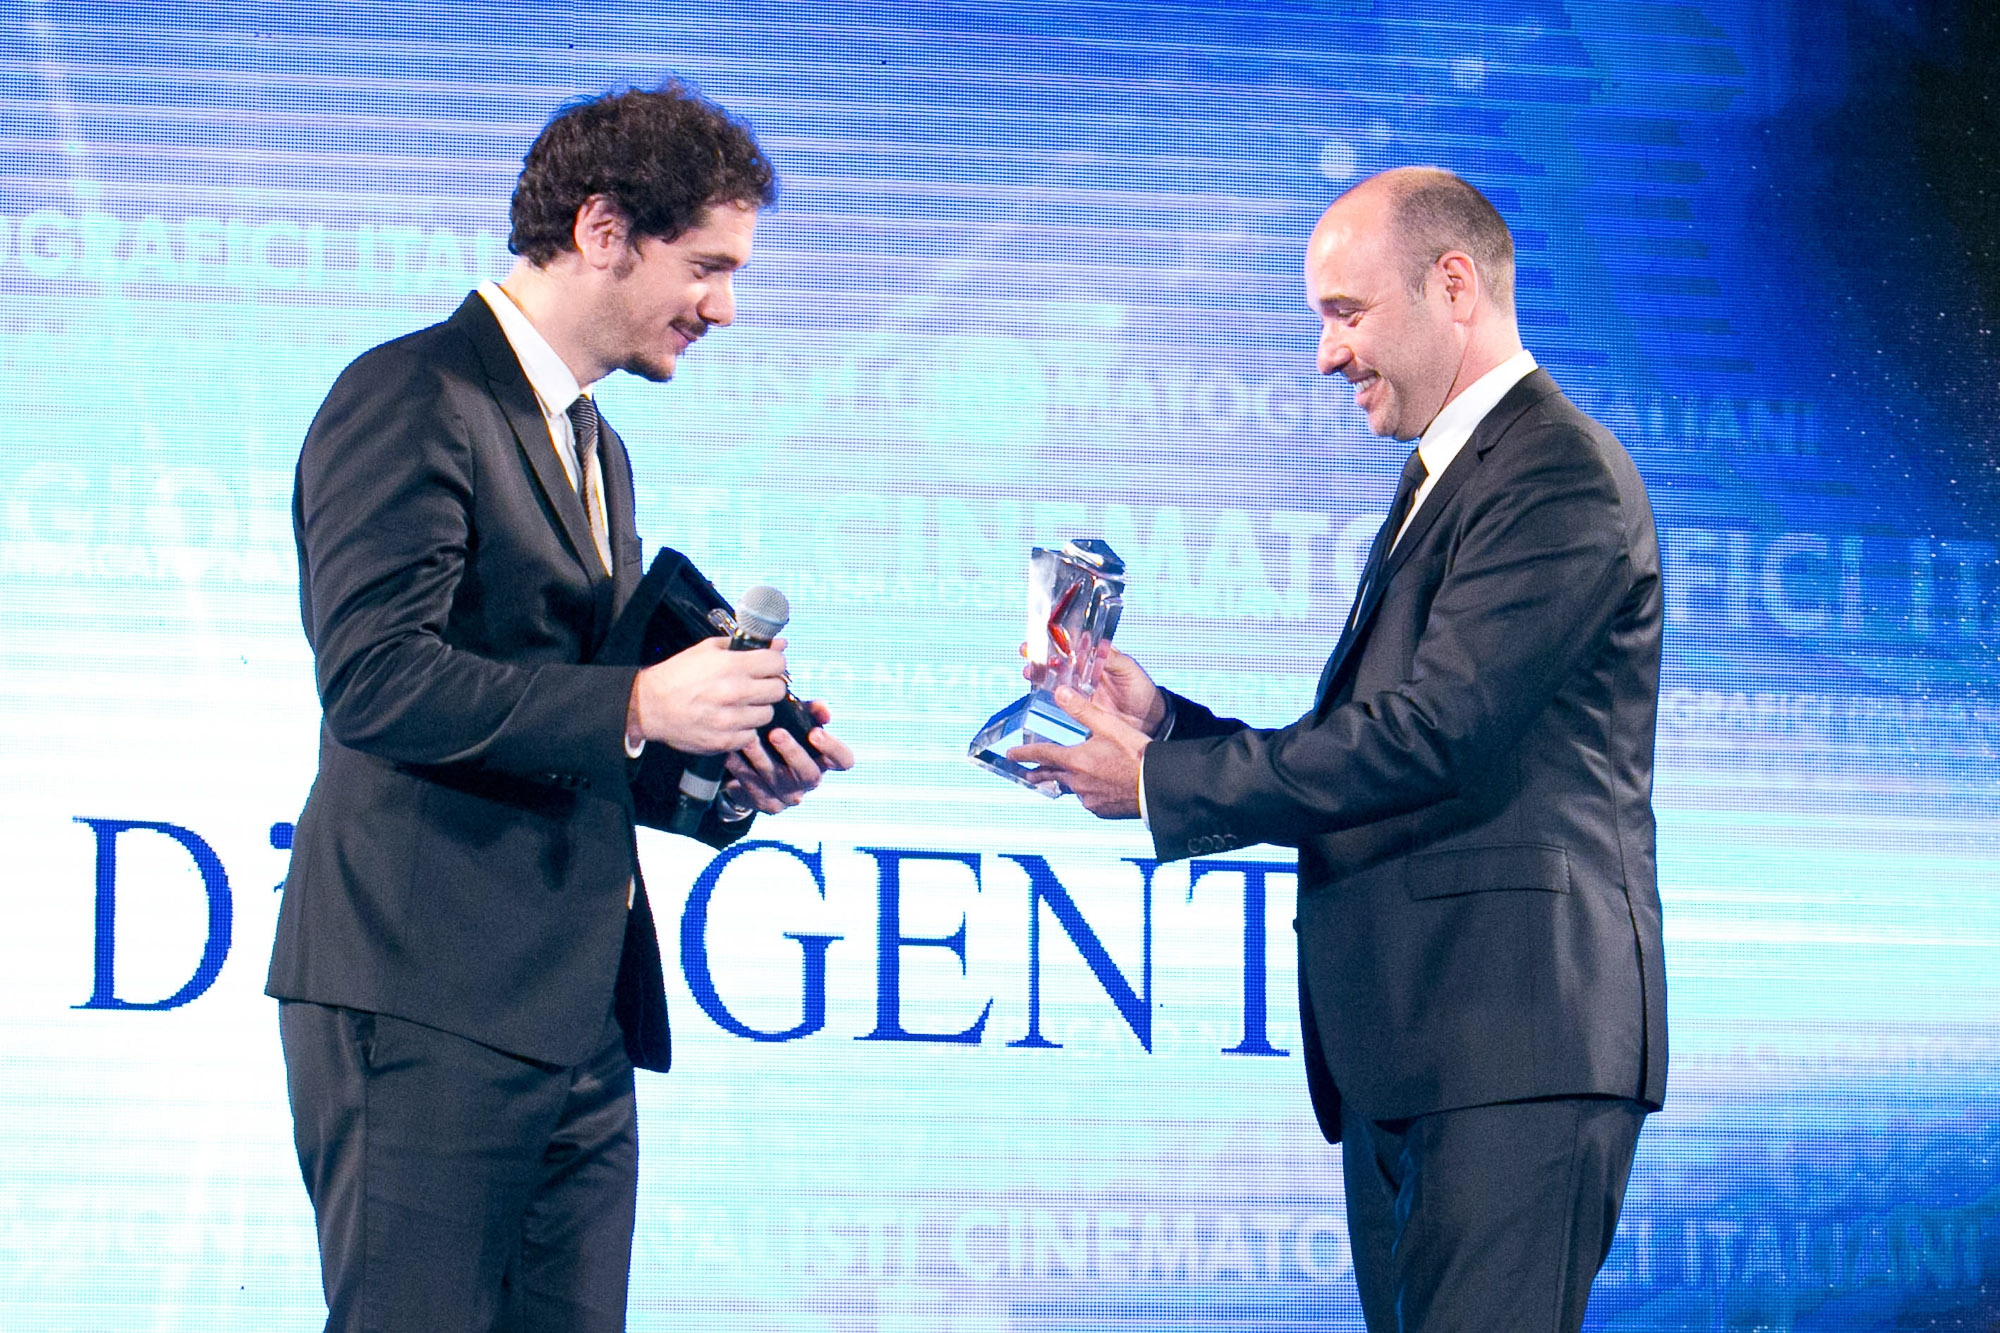 Hamilton Watches & Nastri d'Argento Hamilton strenghtens its bond to the Cinema industry, sponsoring the film festival organised by the Cinema Journalists Union